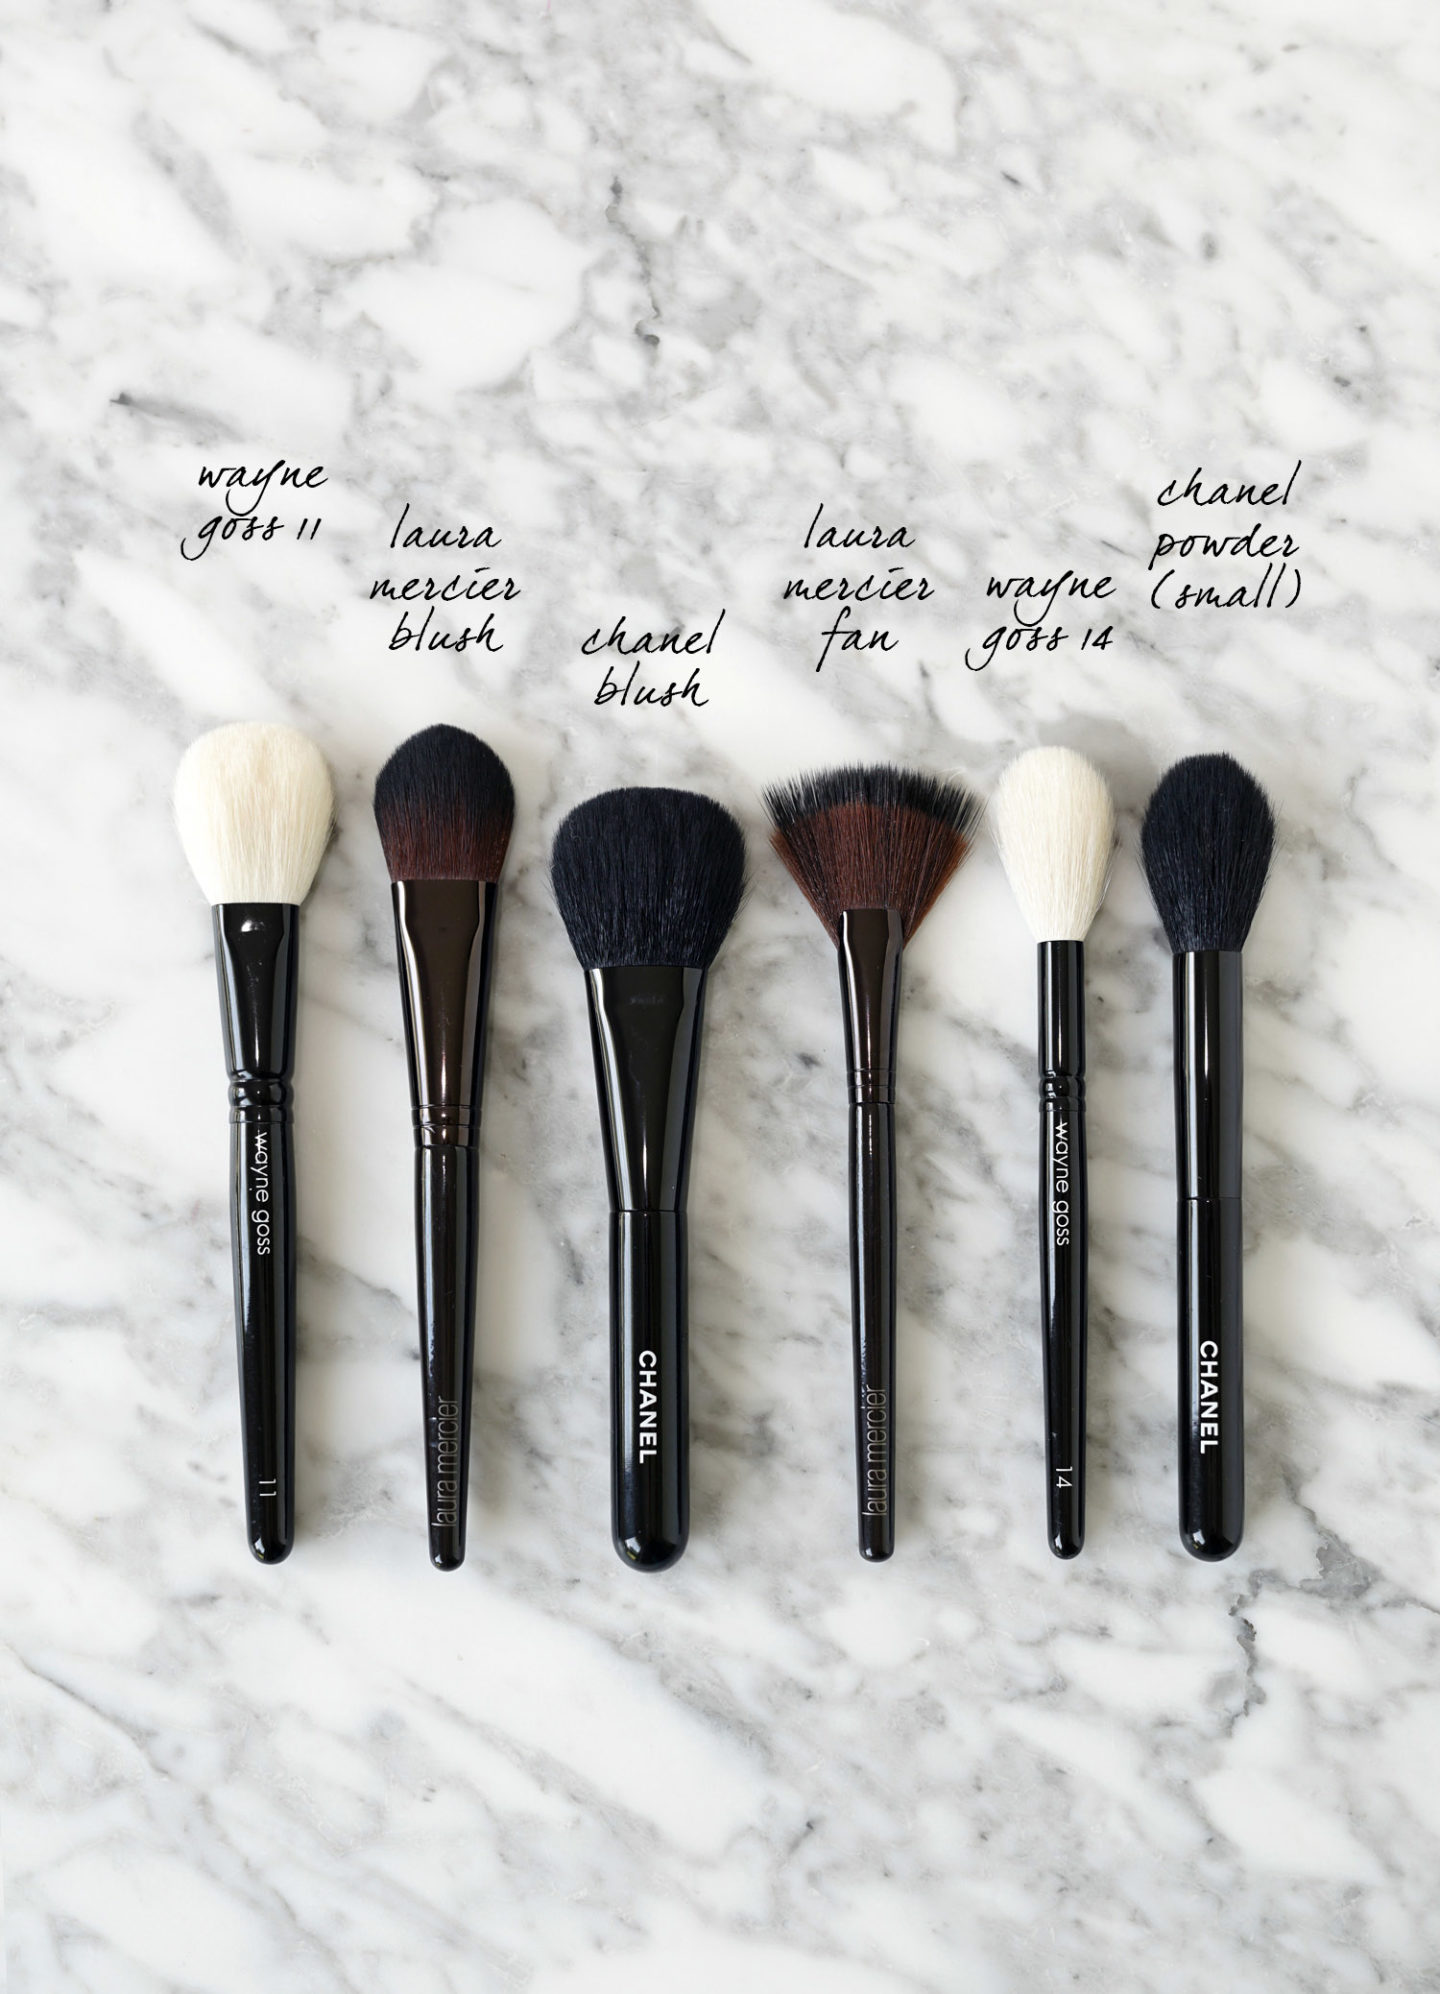 Best Blush and Highlighting Makeup Brushes